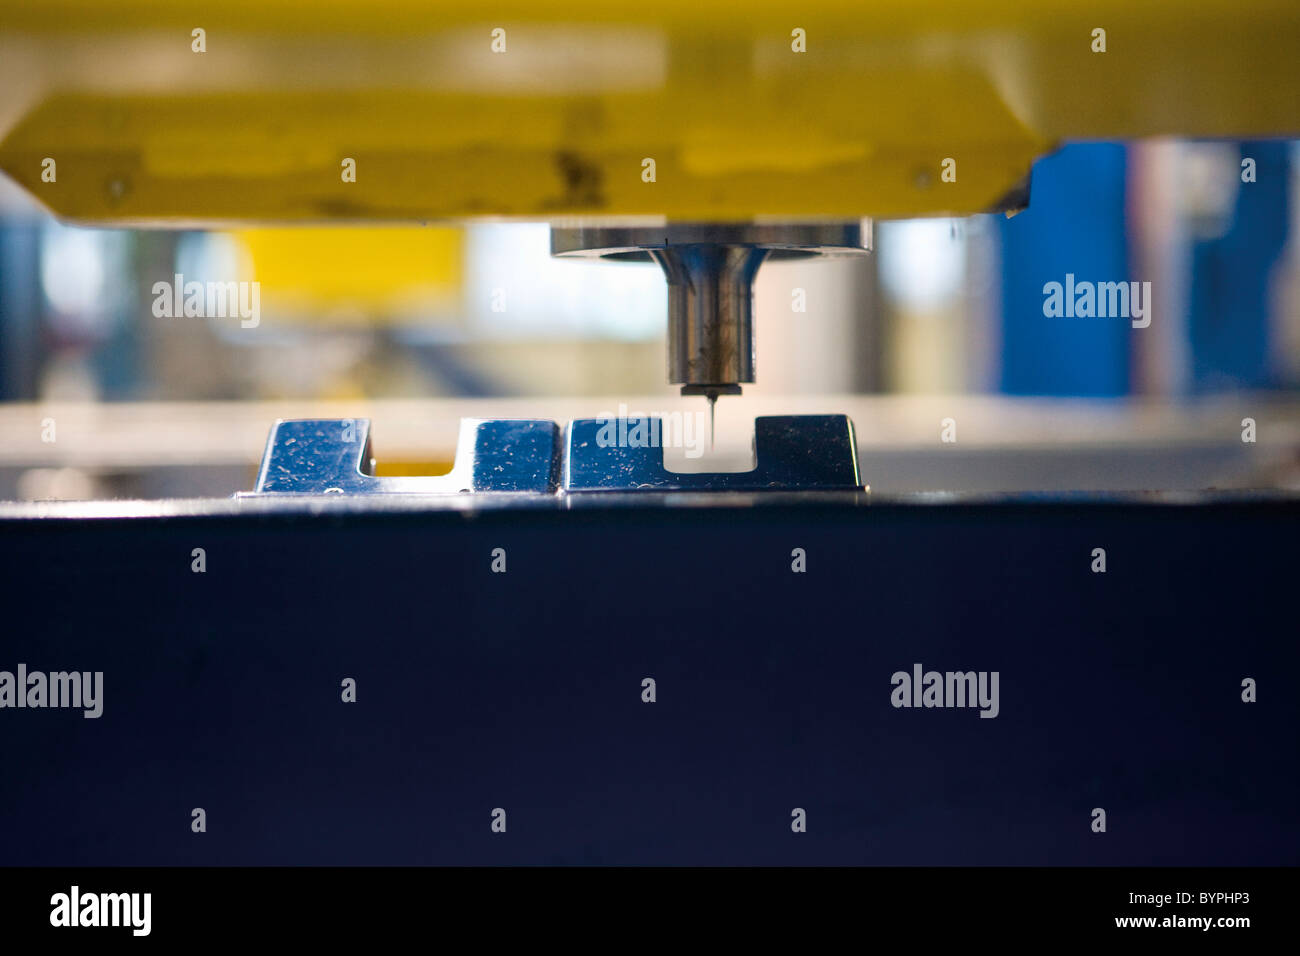 Close-up of blade on ultrasonic cutting machine in carpet tile factory - Stock Image